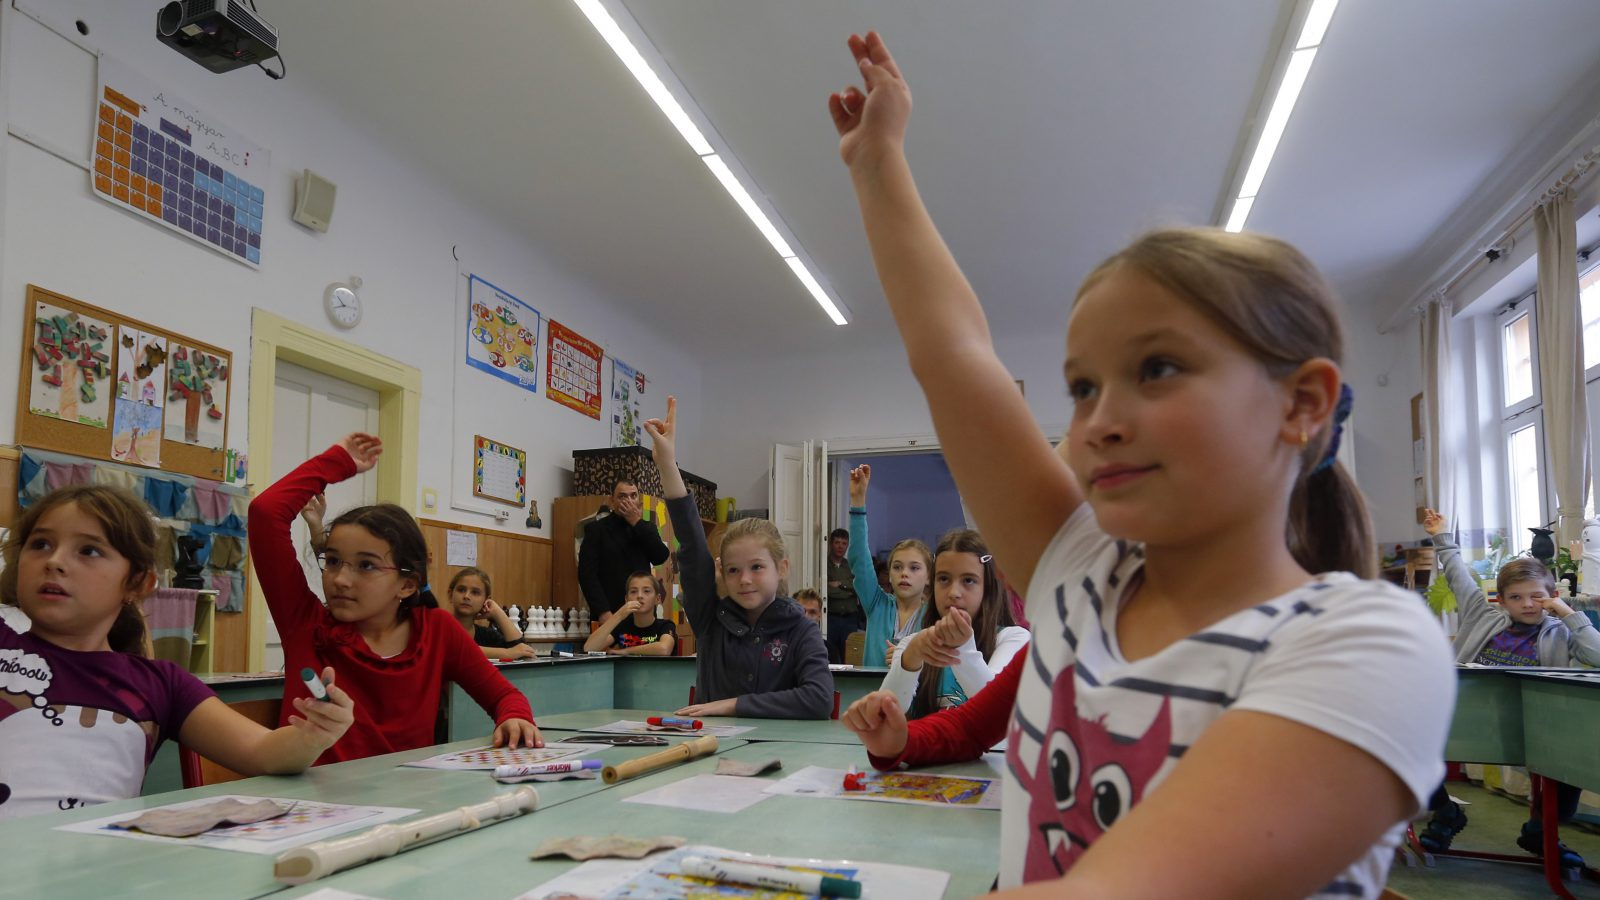 Children raise their hands during a presentation for visiting teachers at the Dezso Lemhenyi school, which uses the new Chess Palace teaching programme of the world's best female chess player Judit Polgar, in Budapest October 15, 2013. With names like Jumpy Horse, Boom Rook and Tiny Pawn, pieces in the Chess Palace come to life and are like close friends who guide the children through difficult school subjects. They range in size from 1 cm (under half an inch) tall to a meter (three feet) in height. Chairs, walls and carpets also sport chess motifs. The pieces, whose combinations and moves represent mathematical, linguistic or musical patterns, help children develop their skills in chess and in their school studies while making the learning process a more joyous exercise. Picture taken October 15, 2013. REUTERS/Laszlo Balogh (HUNGARY - Tags: SPORT CHESS EDUCATION SOCIETY) - RTX14MDC